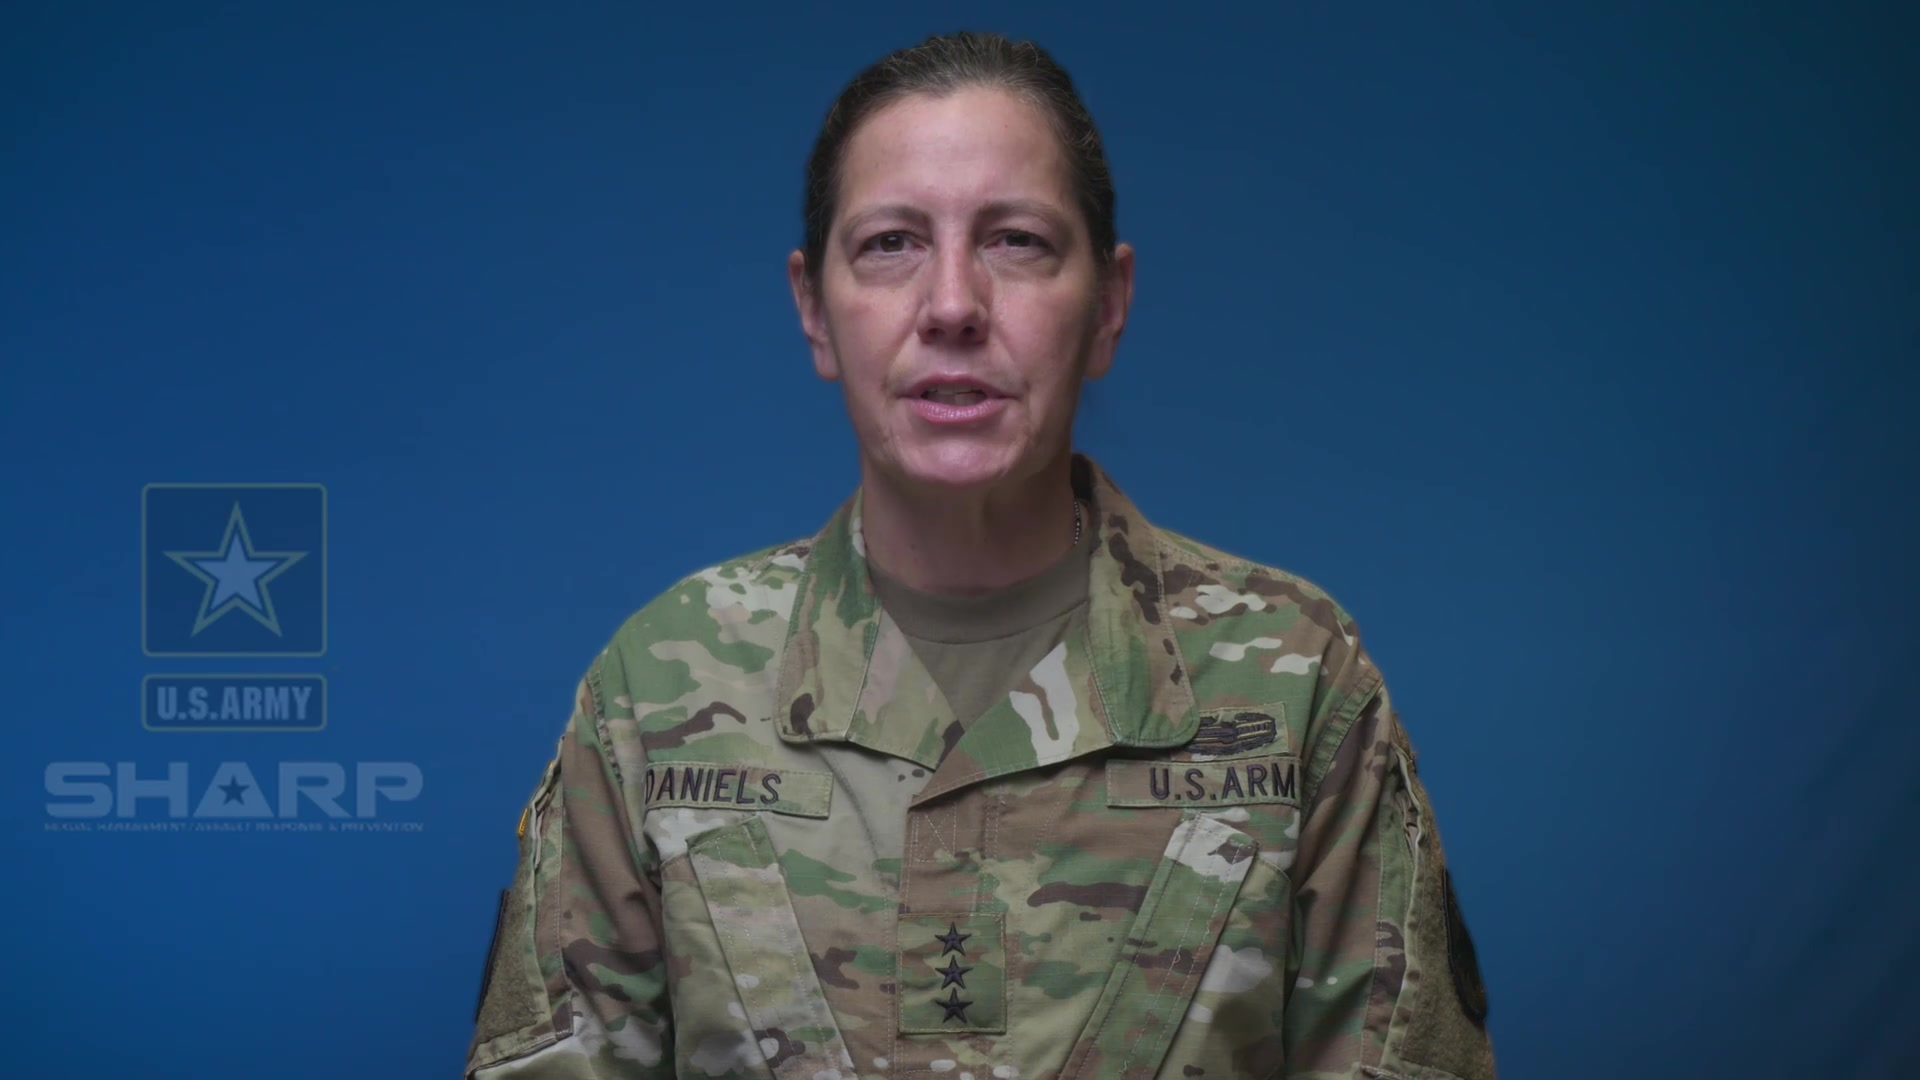 Lt. Gen. Jody Daniels, chief of Army Reserve and commanding general, U.S. Army Reserve Command, speaks out against sexual assault and sexual harassment in our ranks. All of us must work together to create an environment of trust and respect.